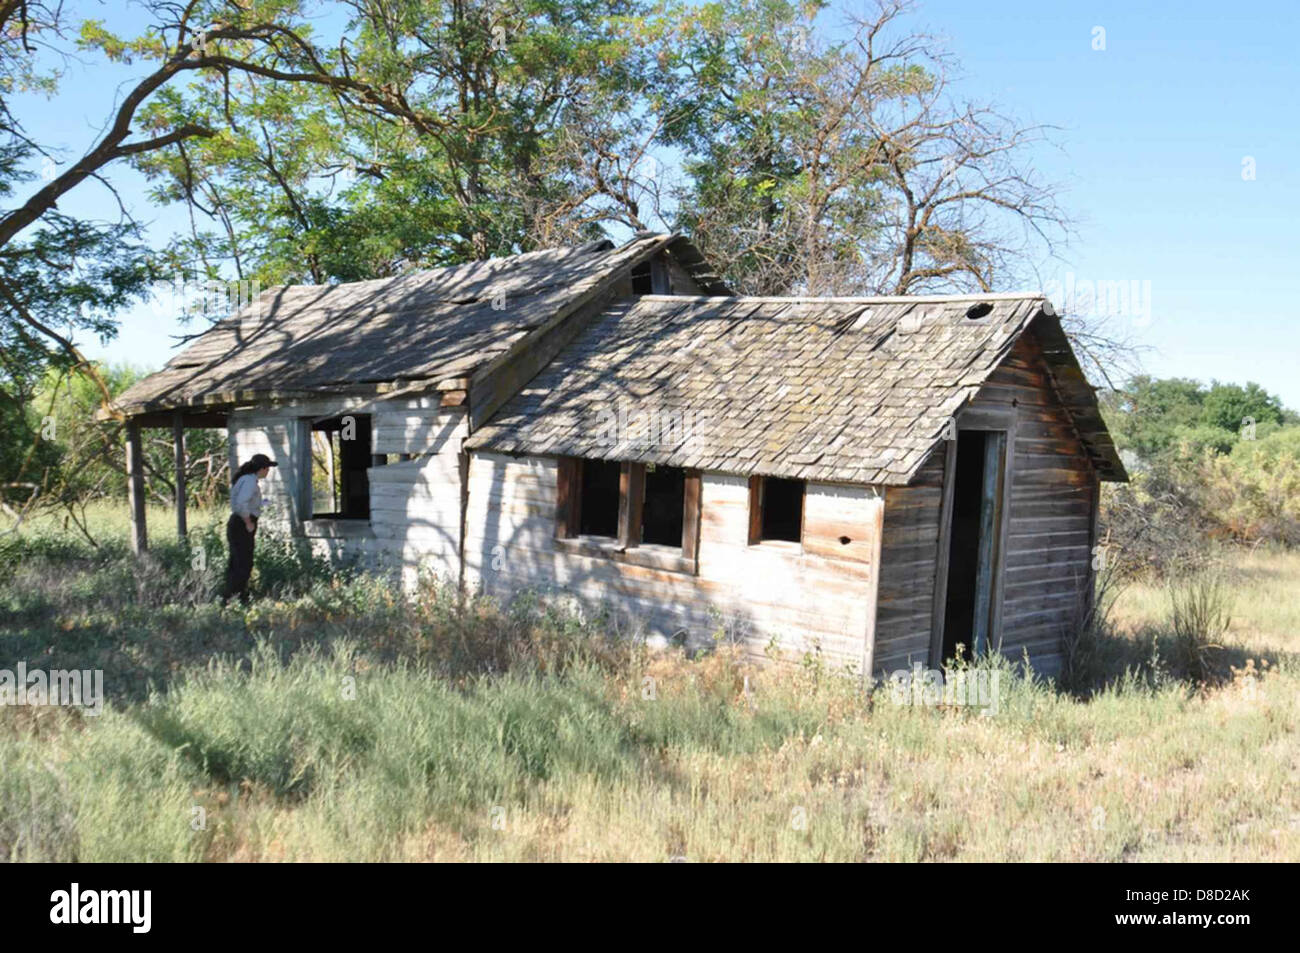 Old house wooden house in field Stock Photo, Royalty Free ...